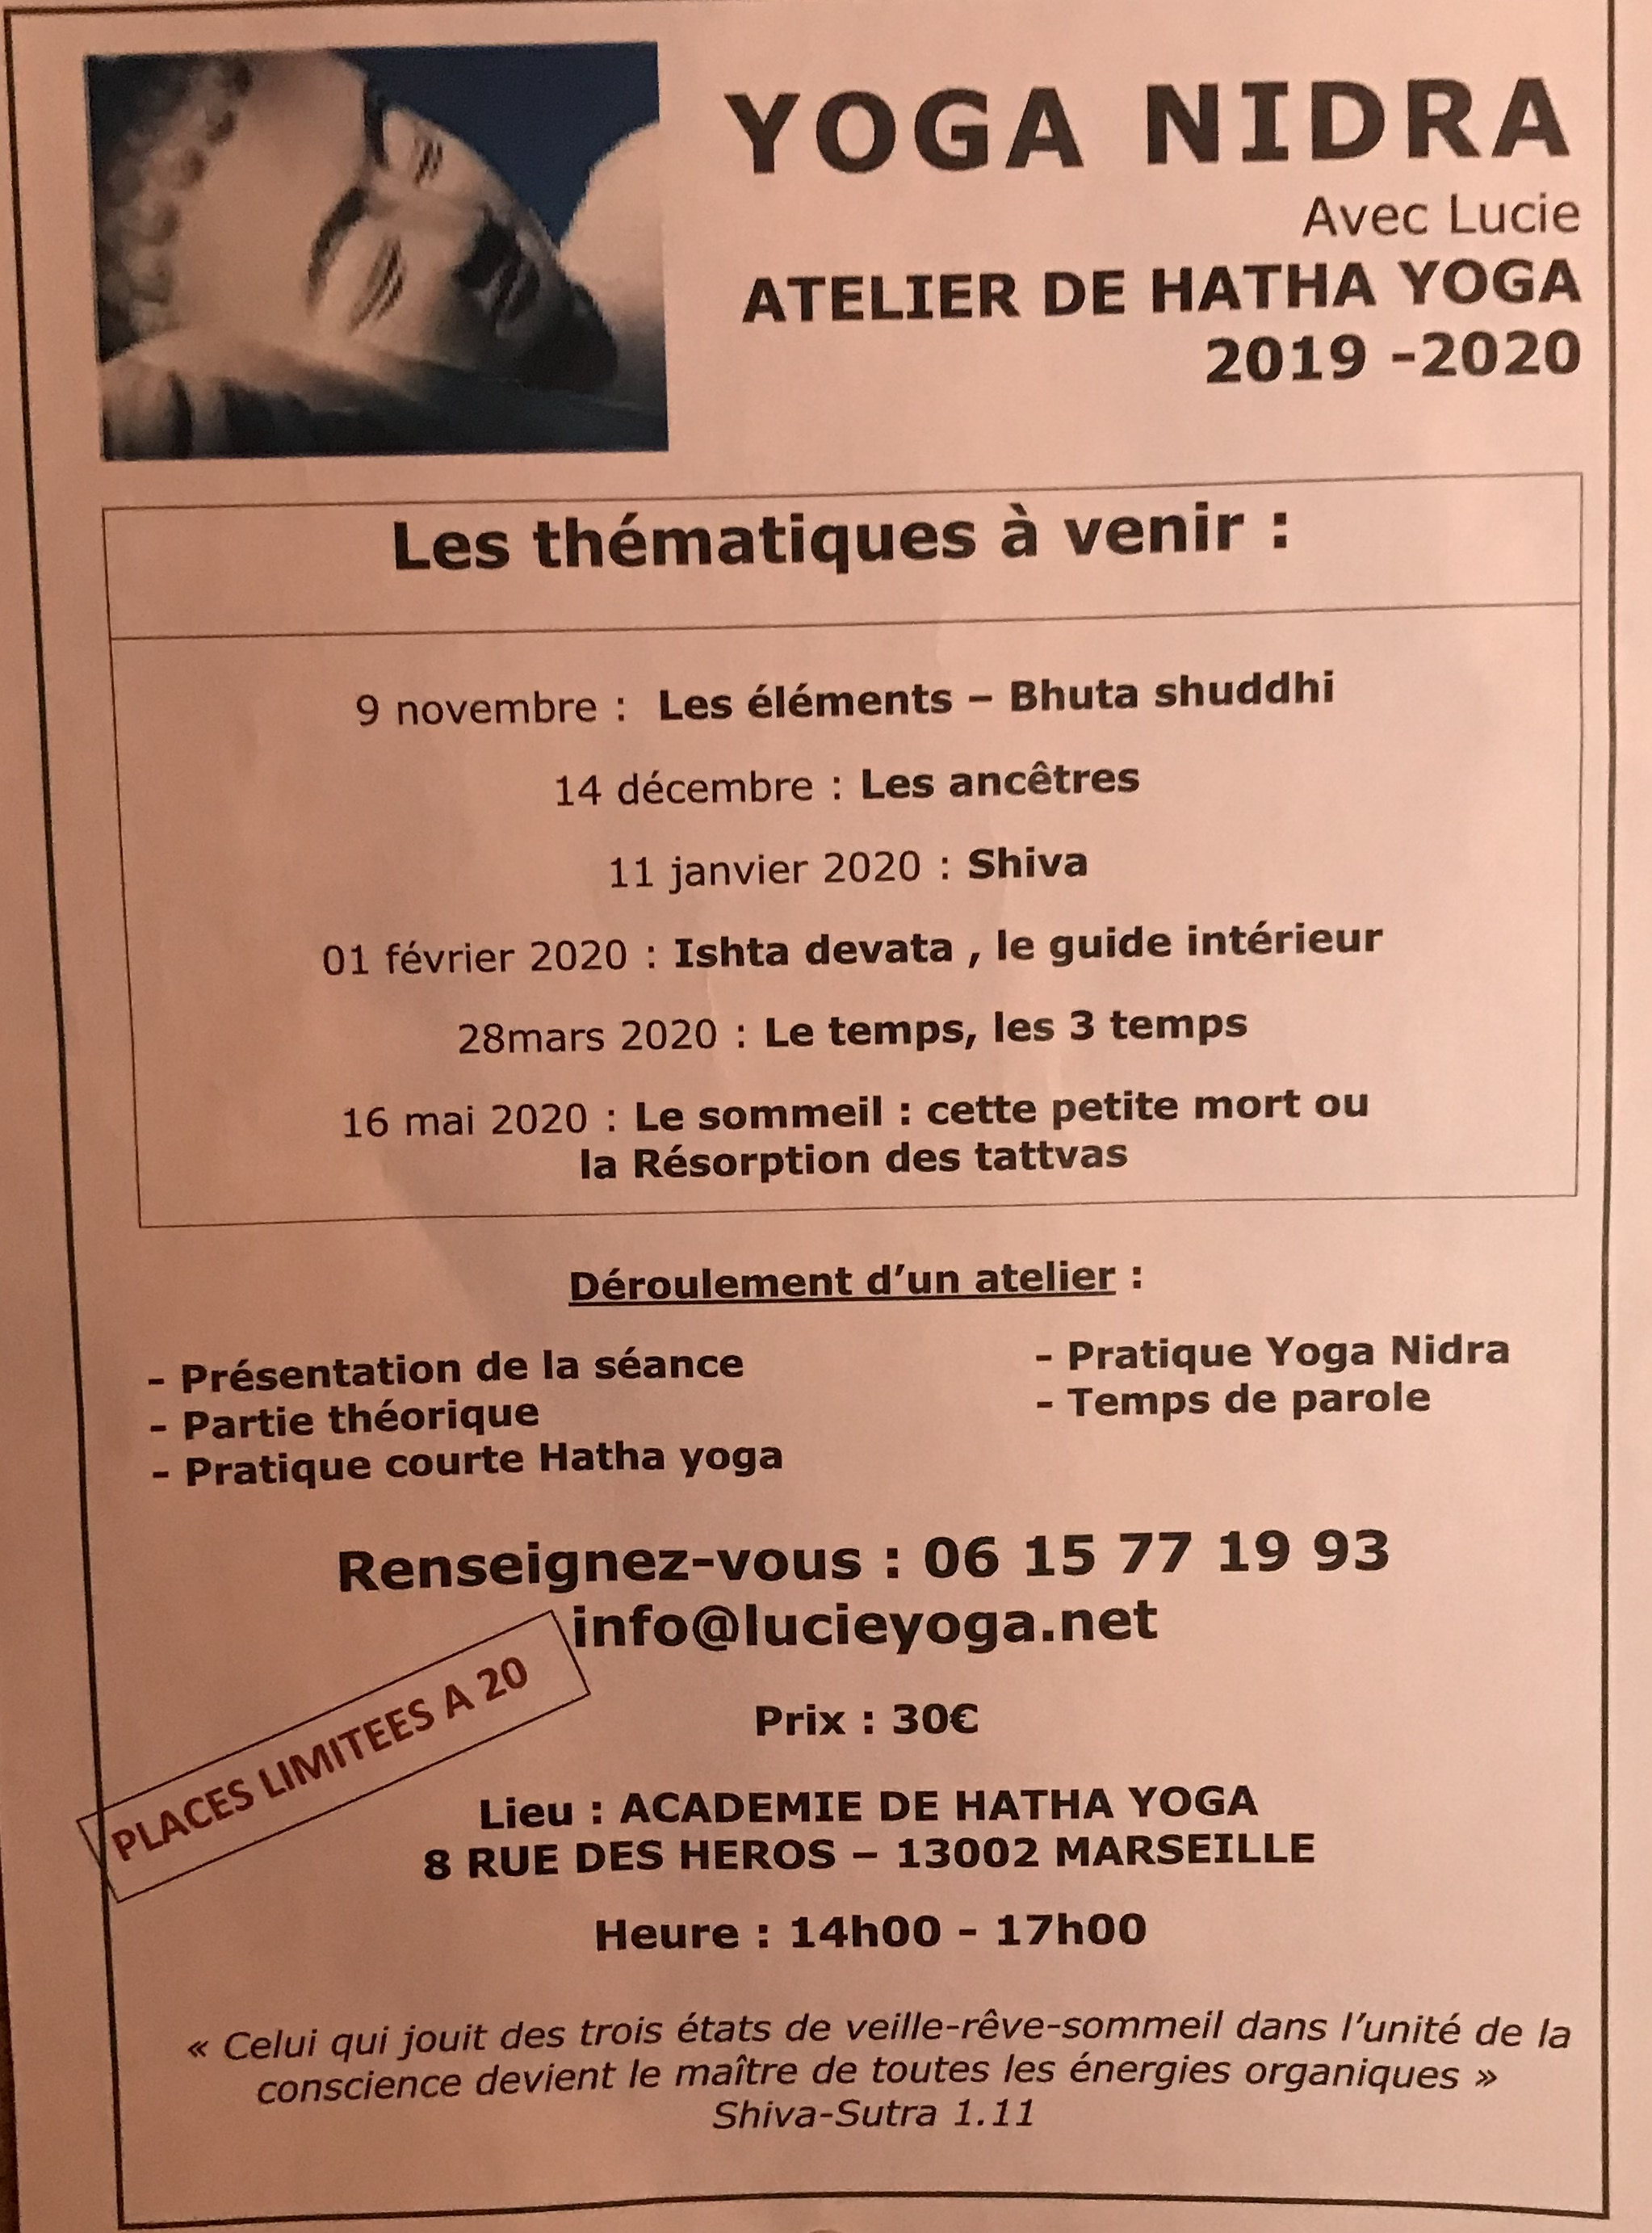 Ateliers Lucie  - 2019-2020